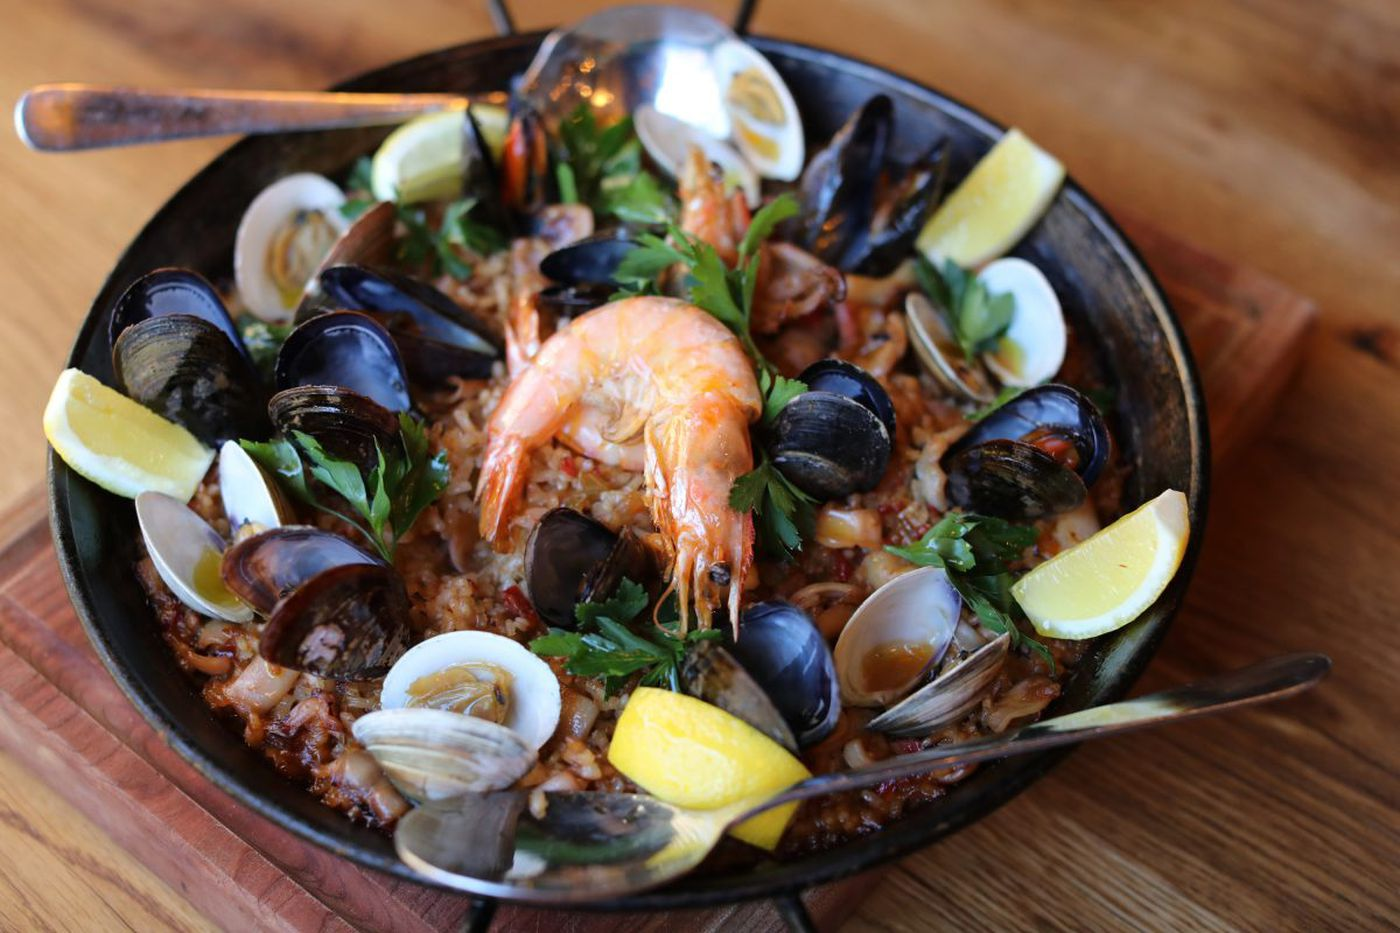 Where to find the best paella in Philadelphia | Craig LaBan